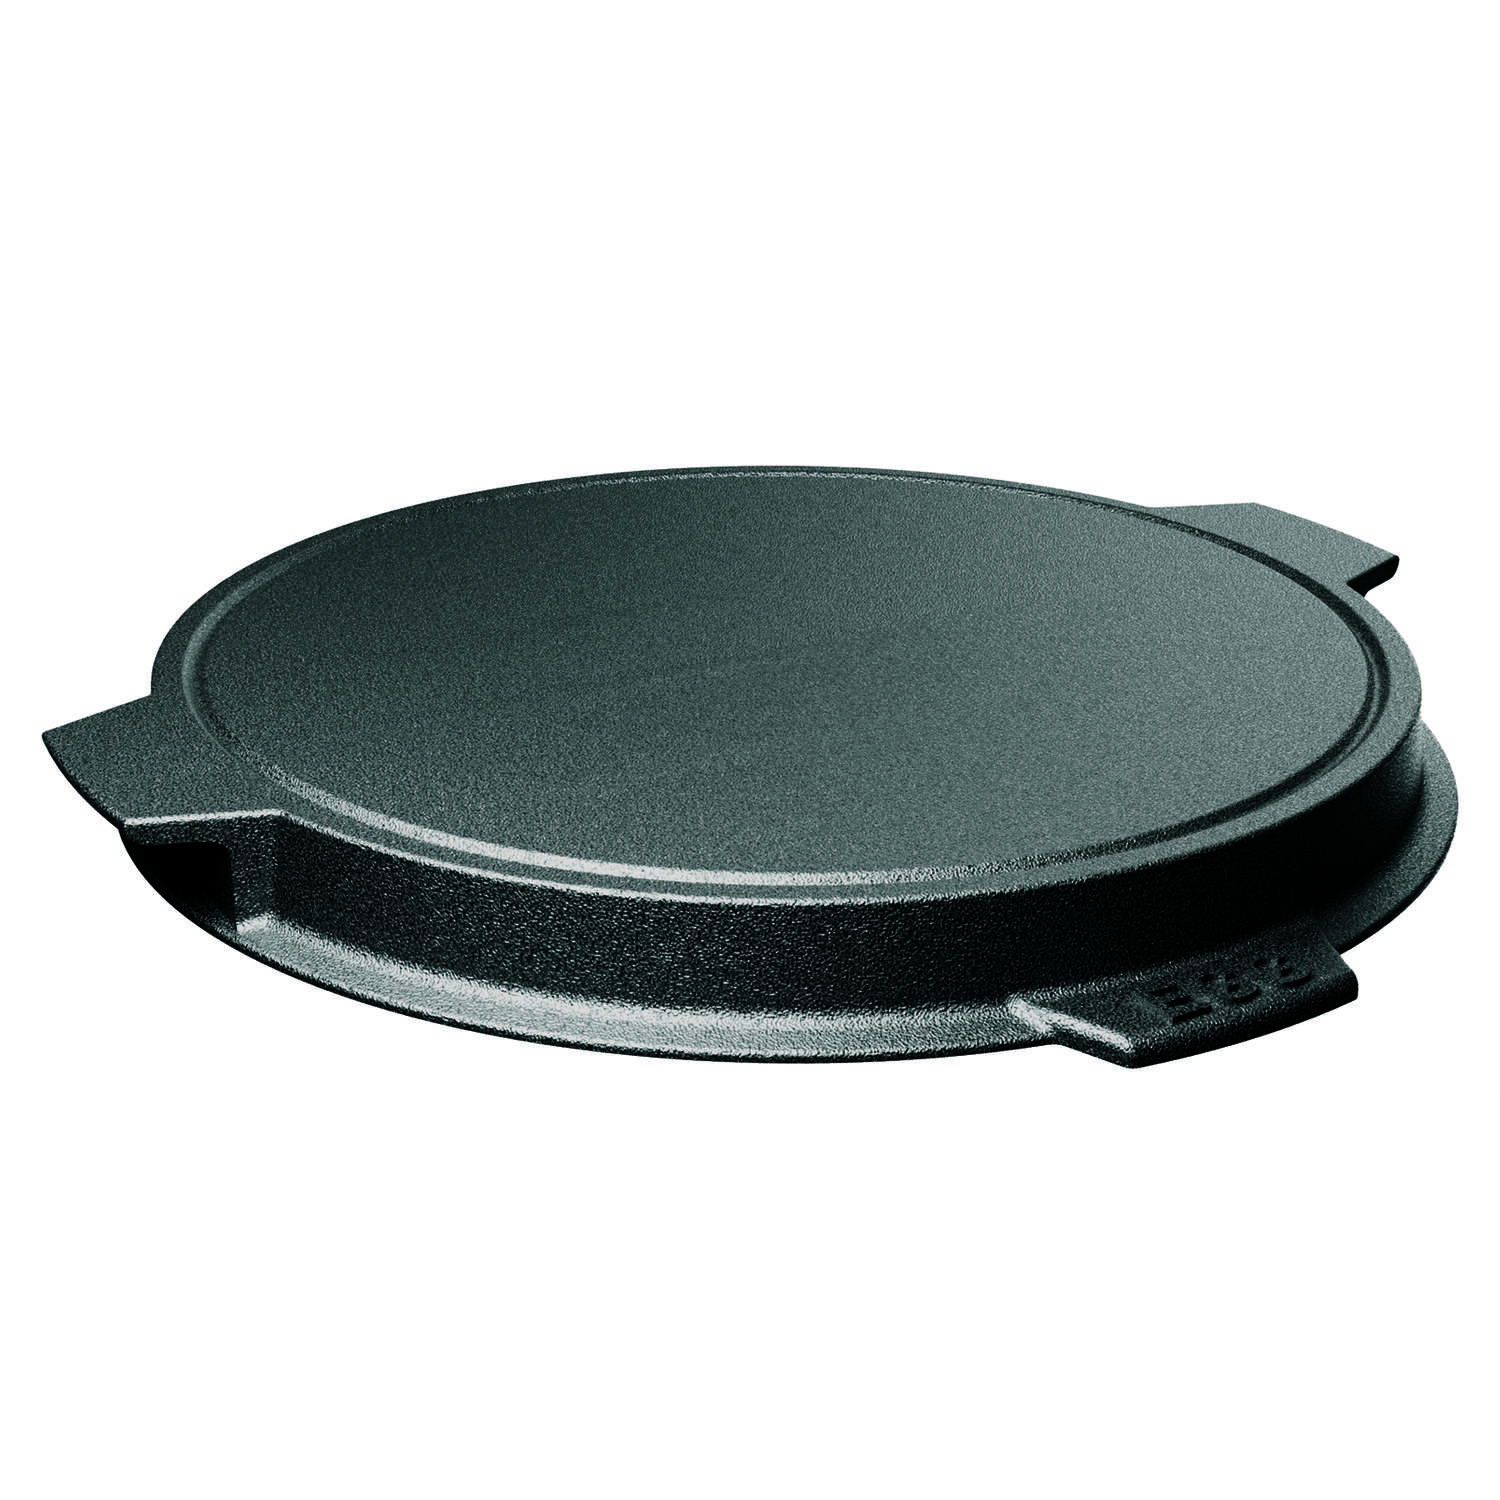 Big Green Egg  Plancha Griddle  10.5 in. L x 10.5 in. W